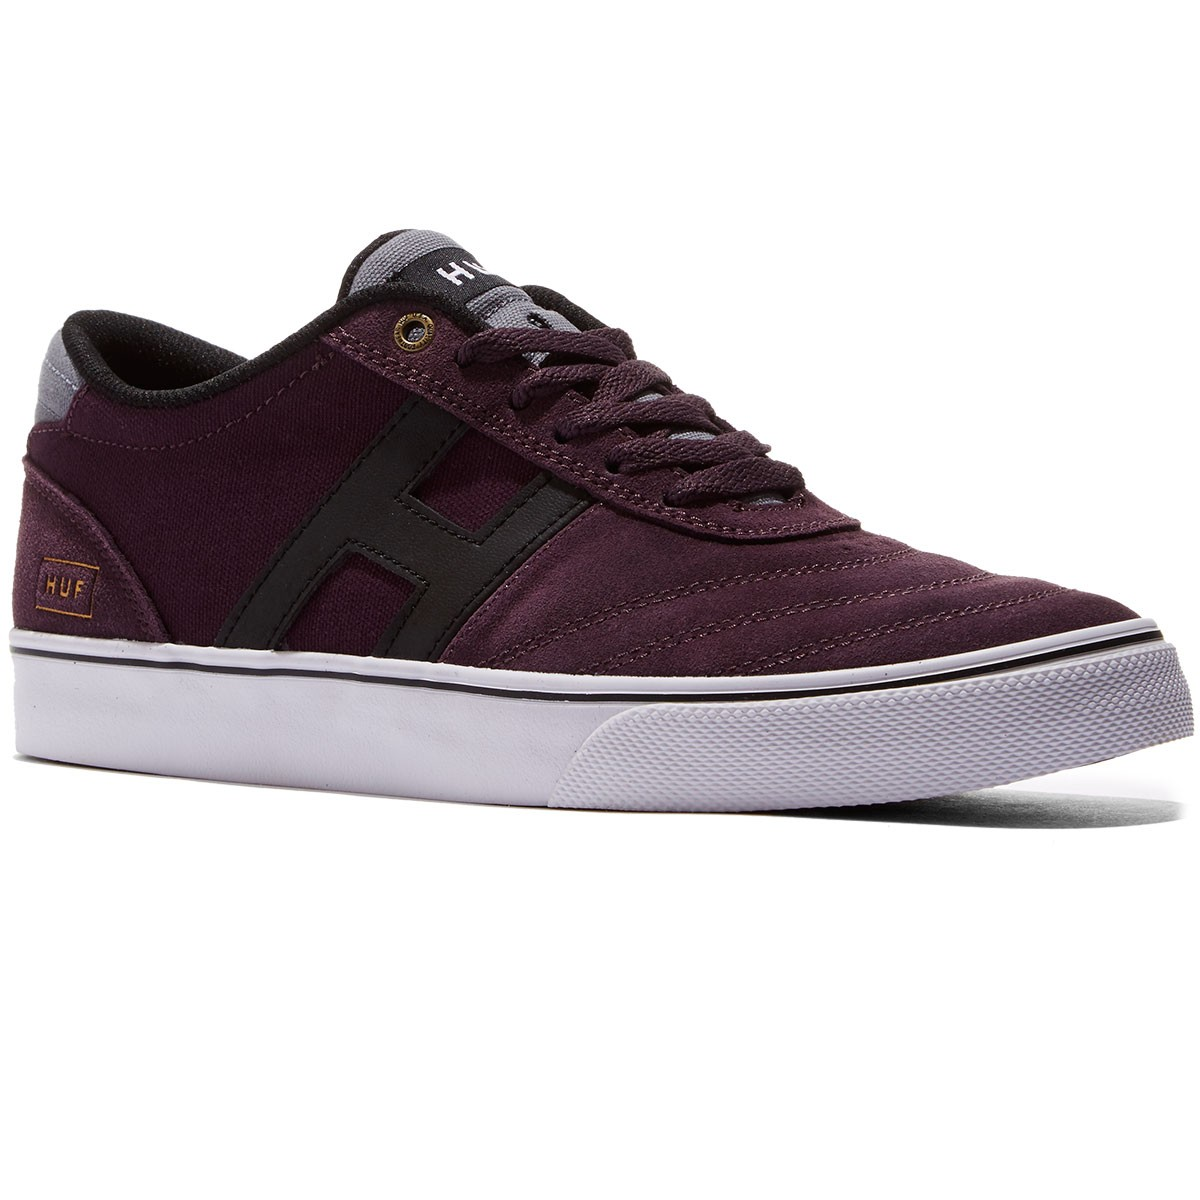 HUF Galaxy Shoes - Wine Castle - 8.0